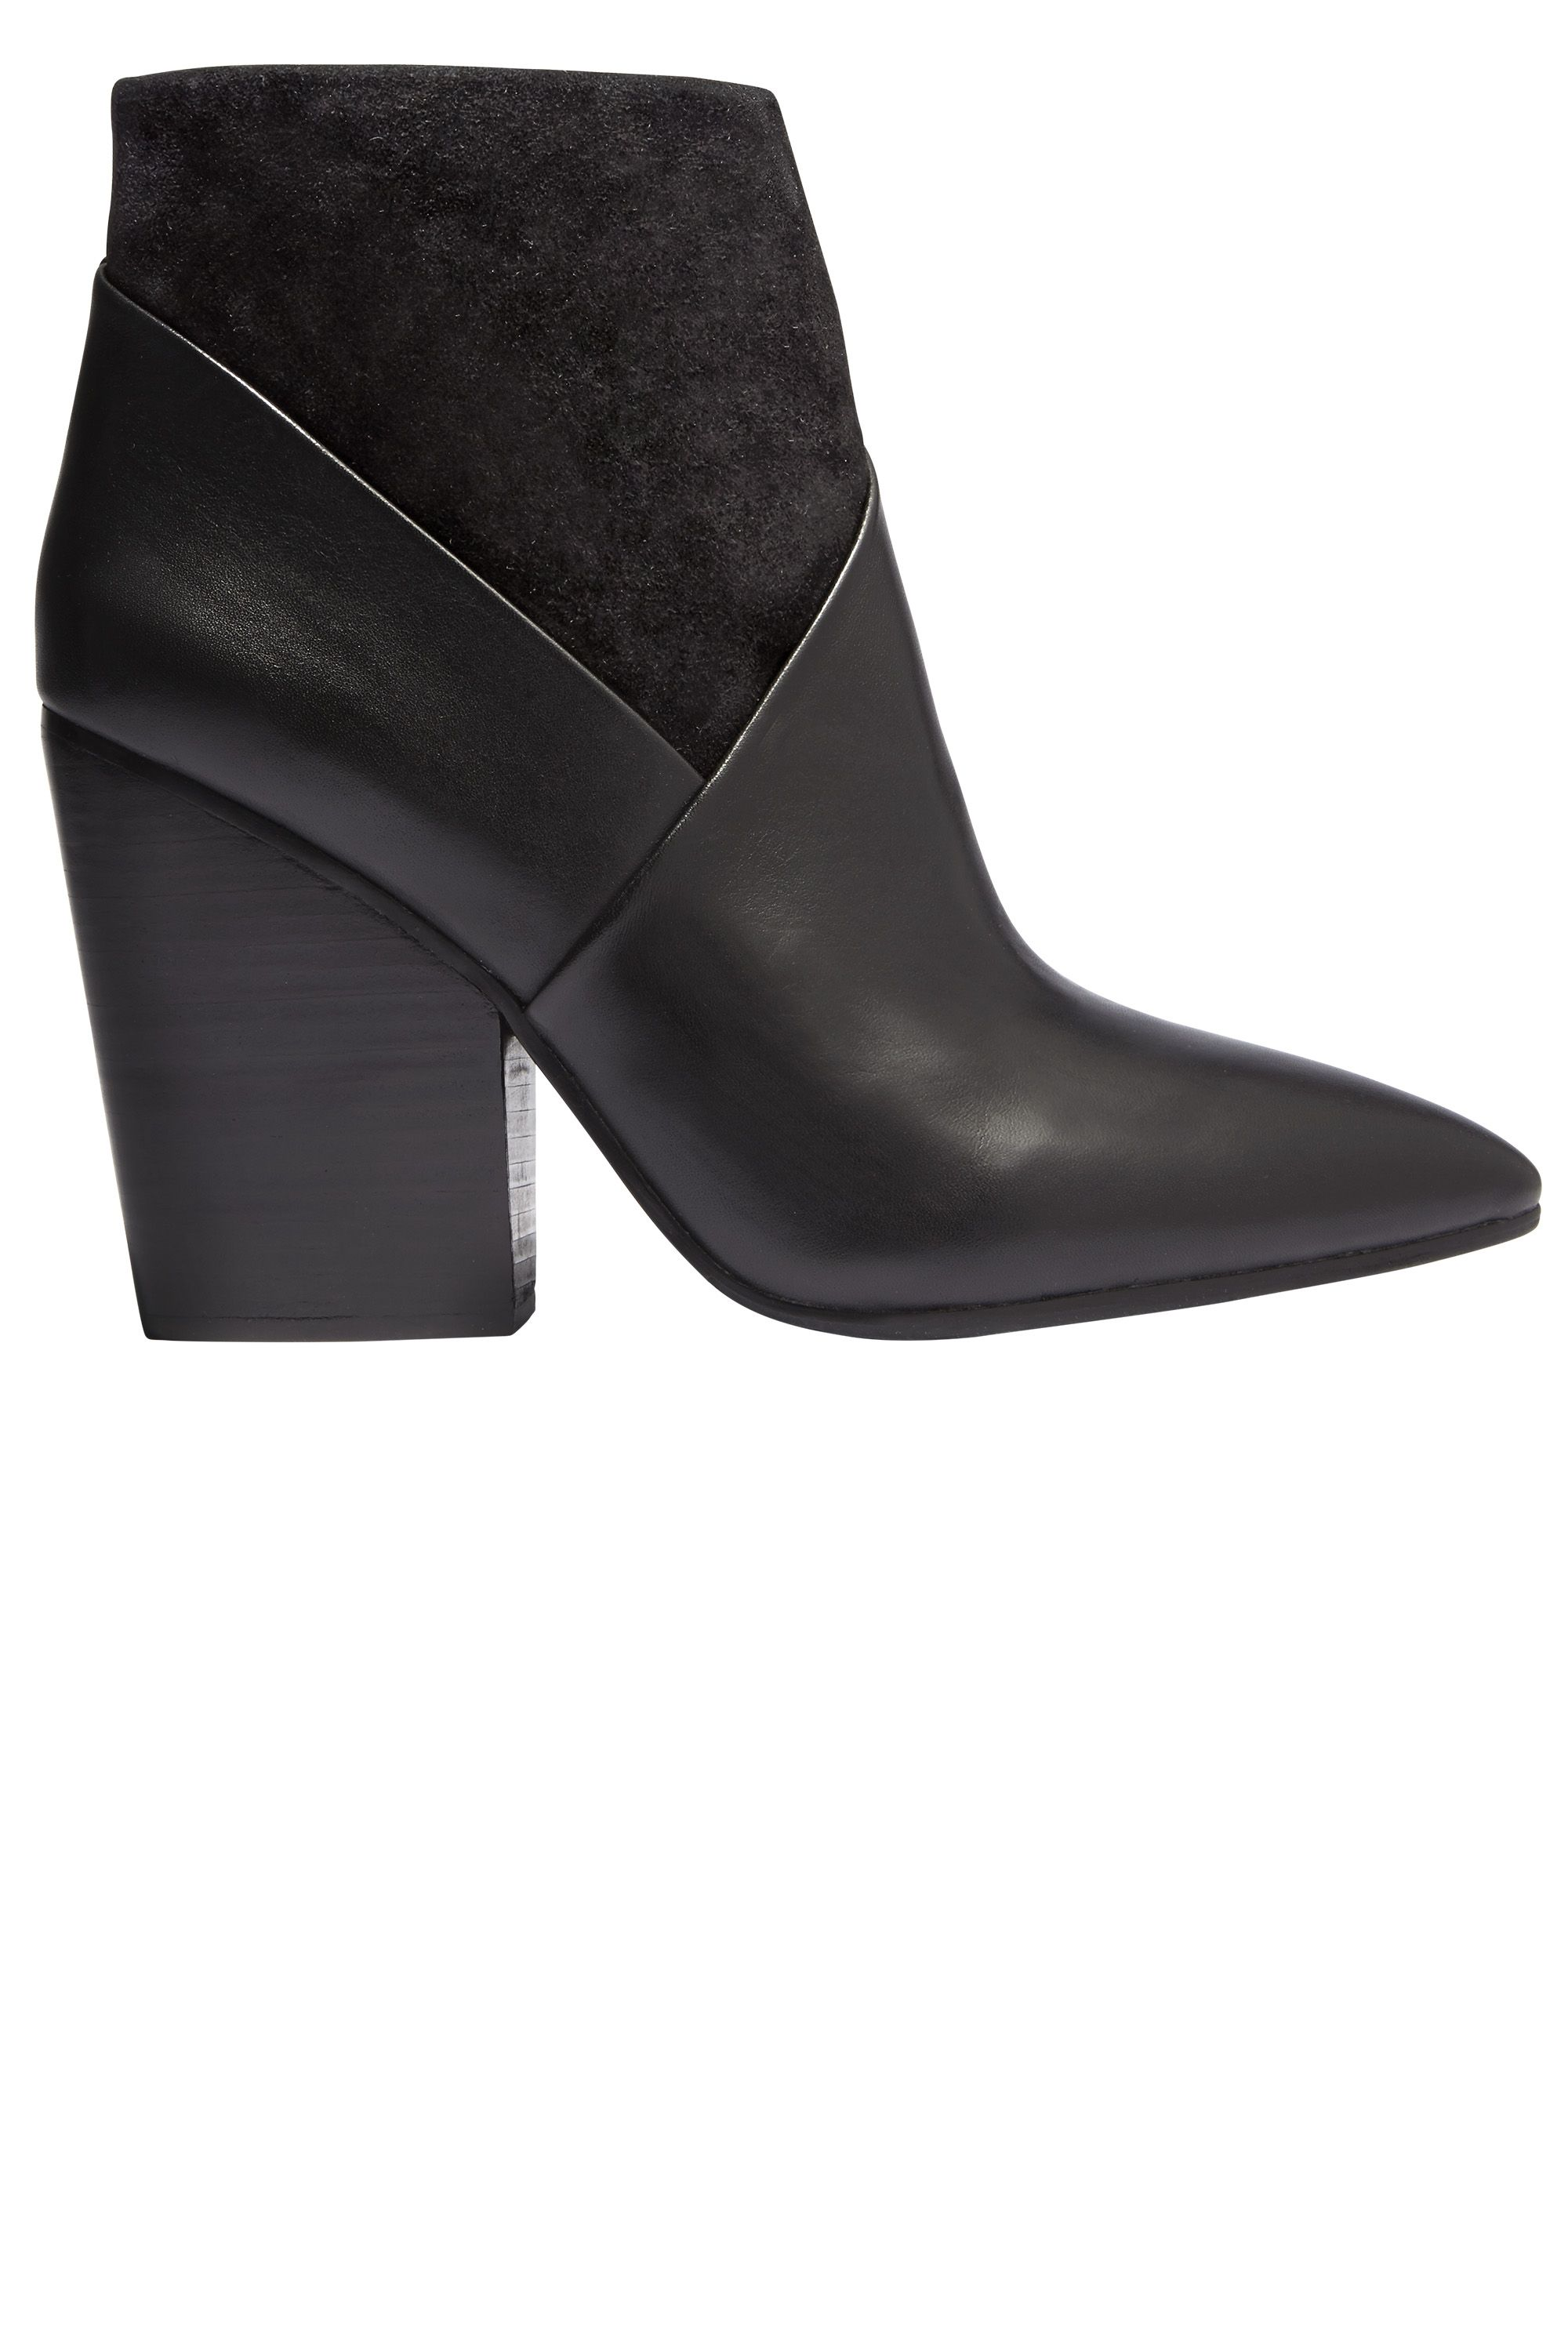 """<p><strong>Vince Camuto  </strong>booties, $169, <a href=""""http://www.vincecamuto.com/boots-booties-shoes/"""" target=""""_blank"""">vincecamuto.com</a>.</p>"""